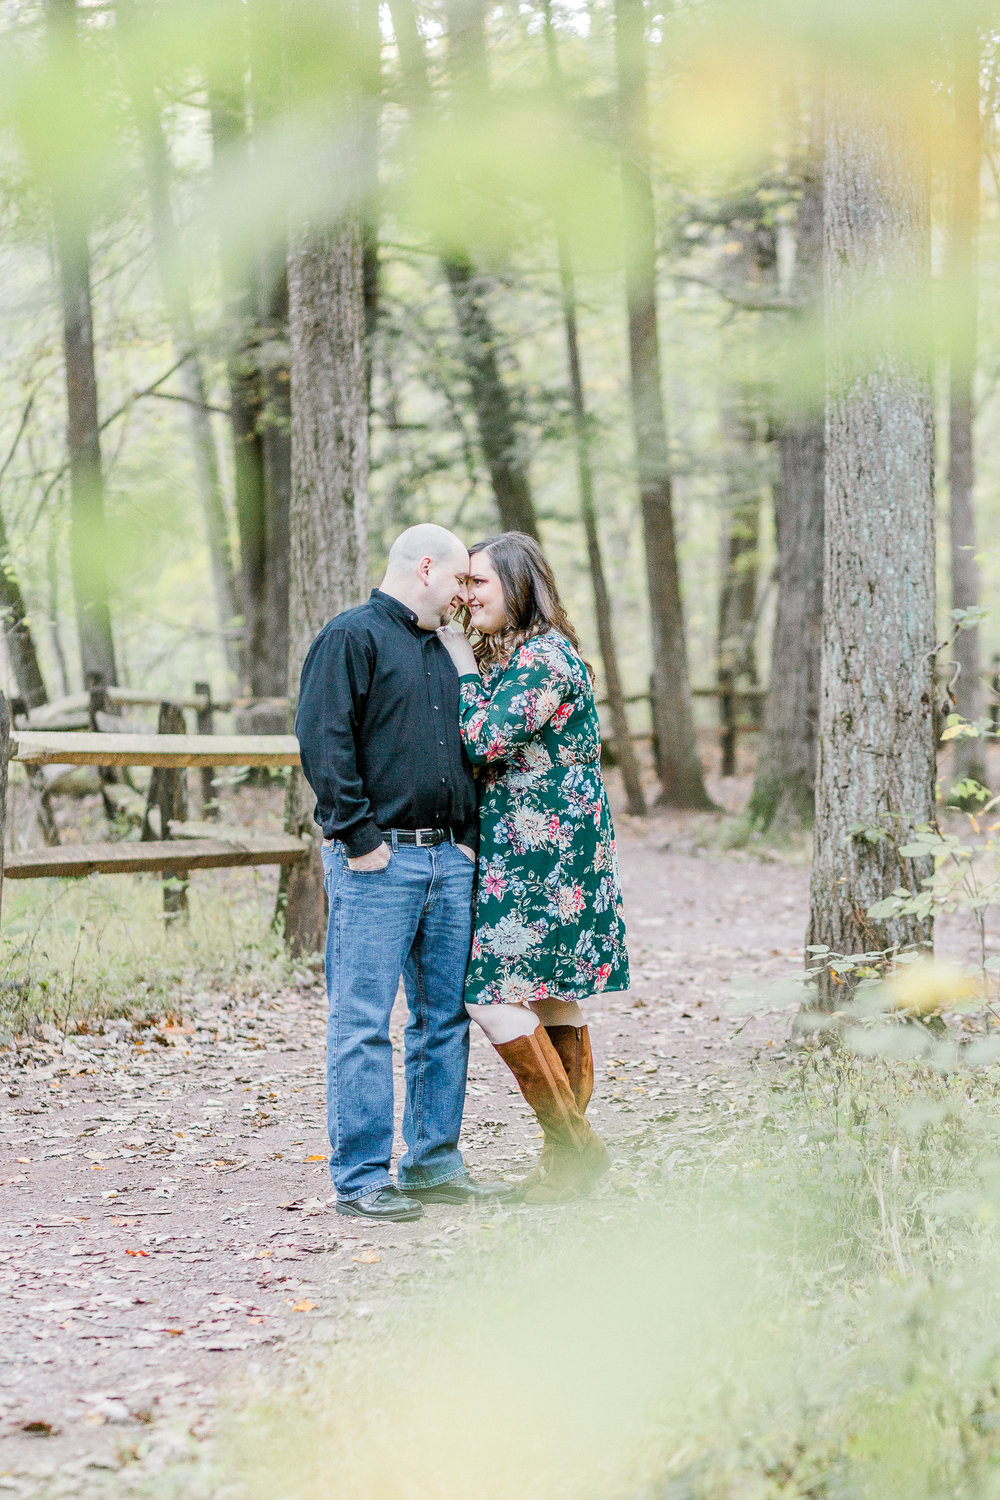 Jacobsburg State Park Nazareth Pennsylvania Woodsy Fall Engagement Session wedding and lifestyle photographer Lytle Photo Co (59 of 64).jpg